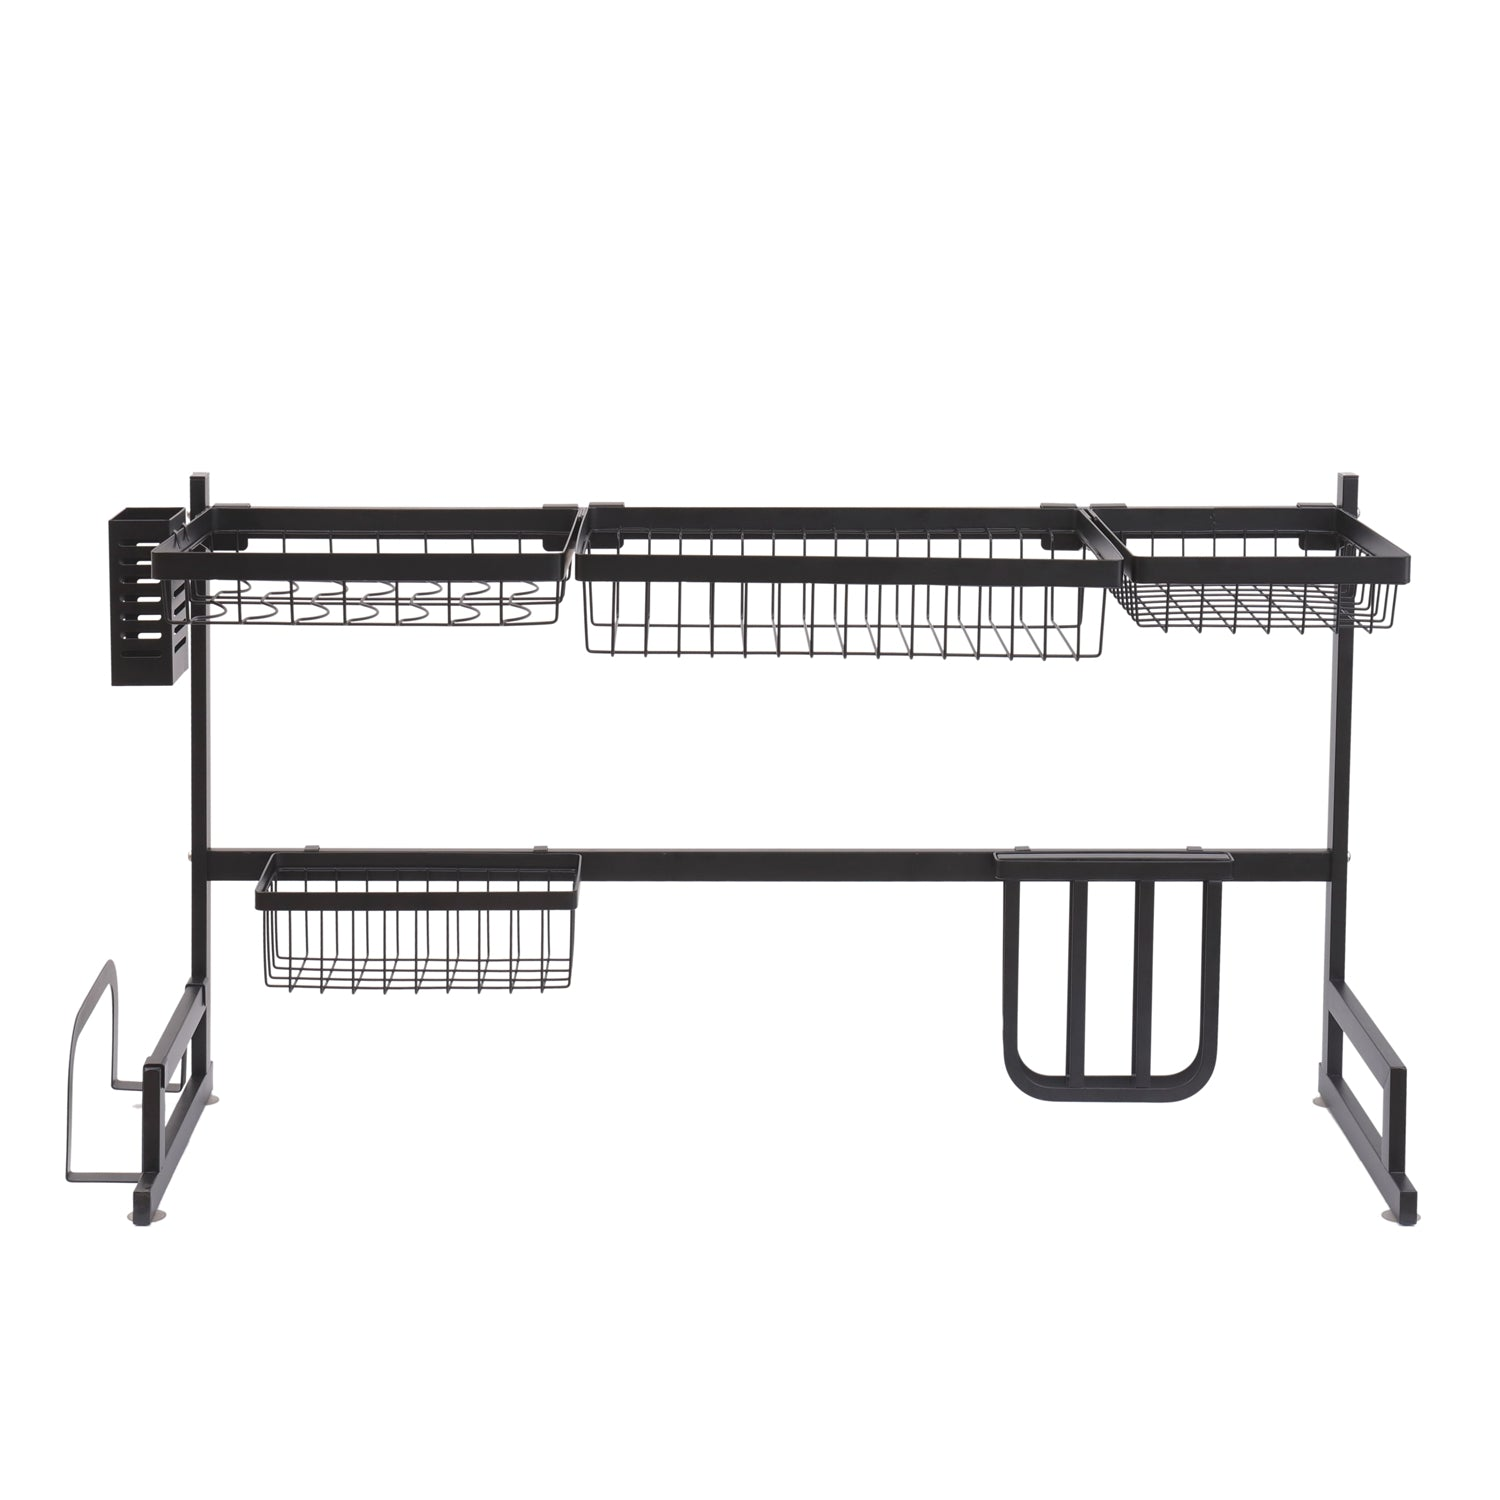 ALTA Over Sink Black Stainless Steel Dish Drying Rack